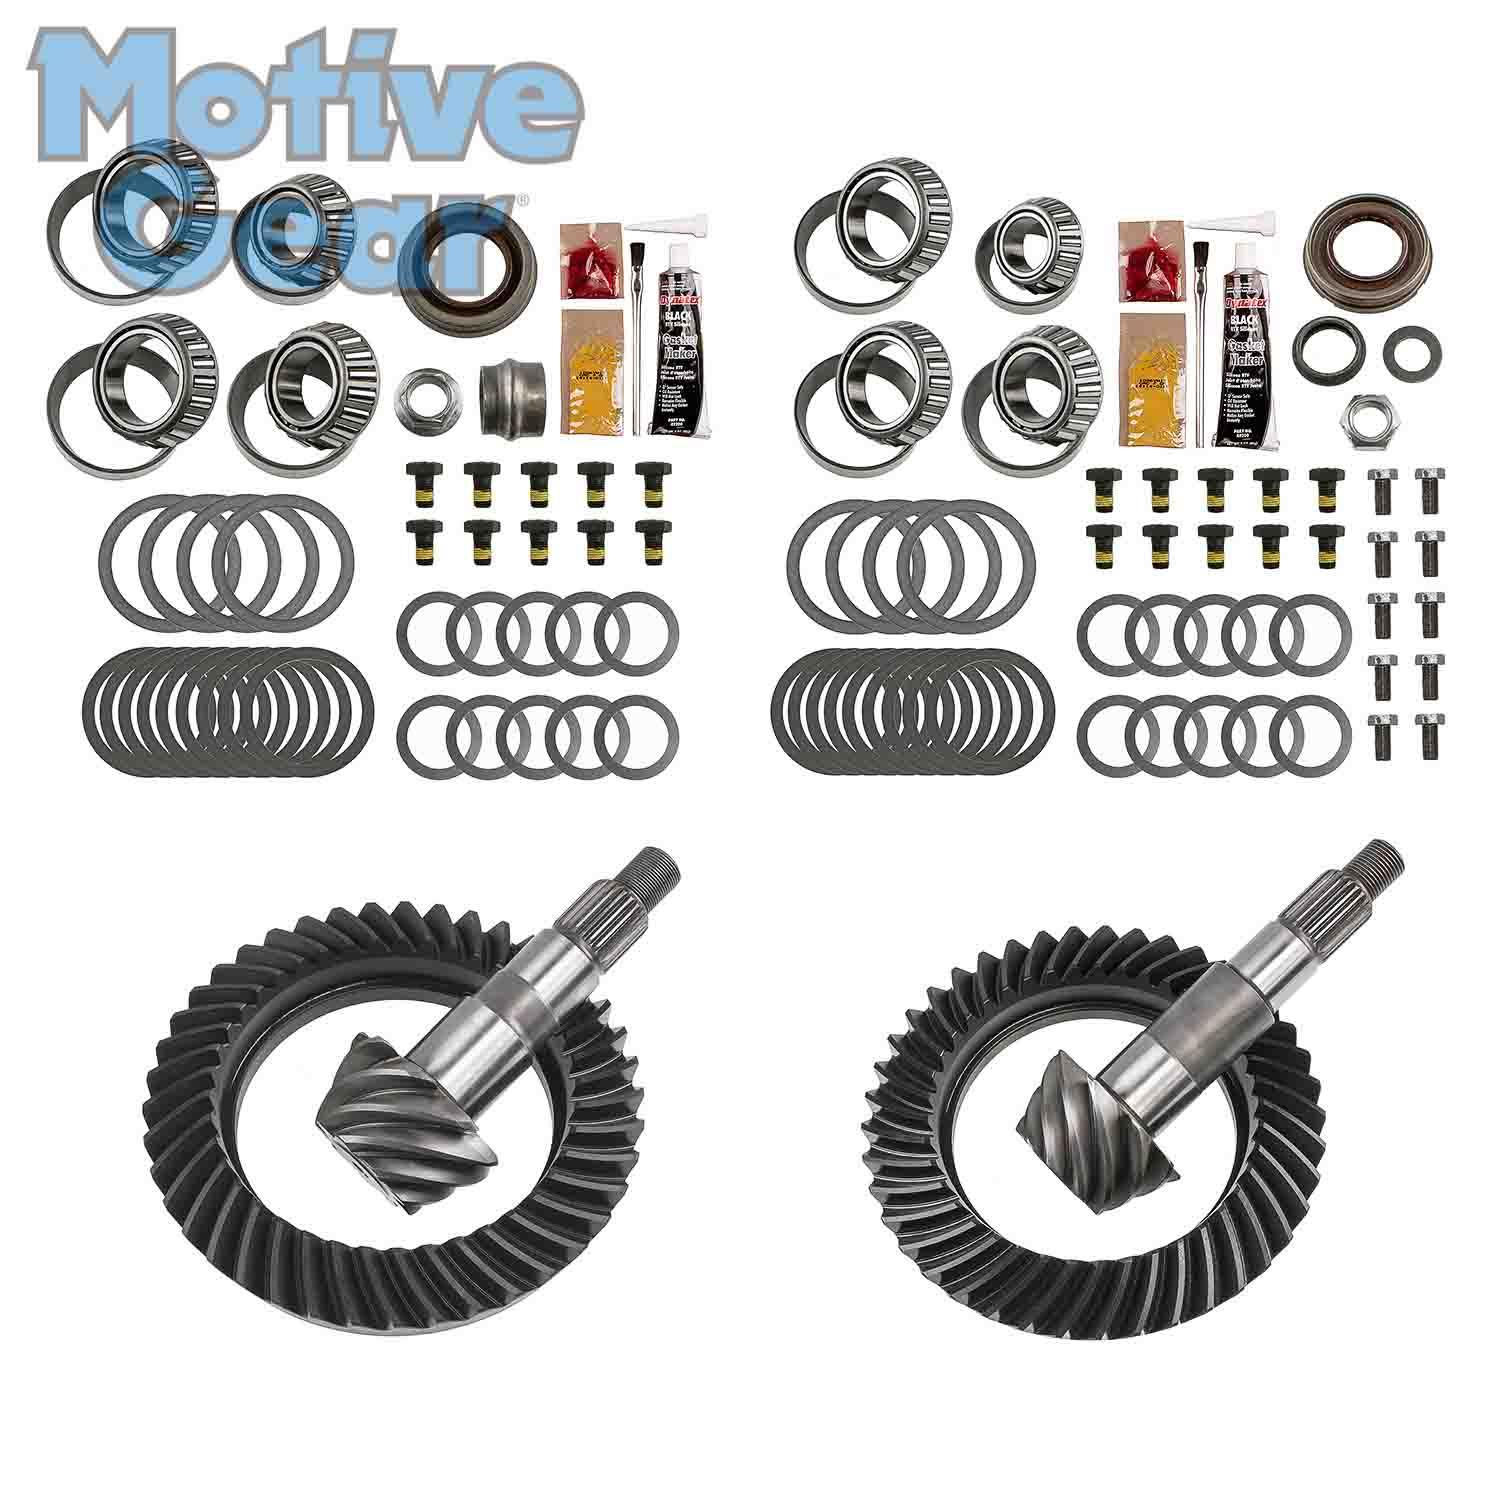 MGK-105 Motive Gear/Midwest Truck Differential Ring and Pinion DANA